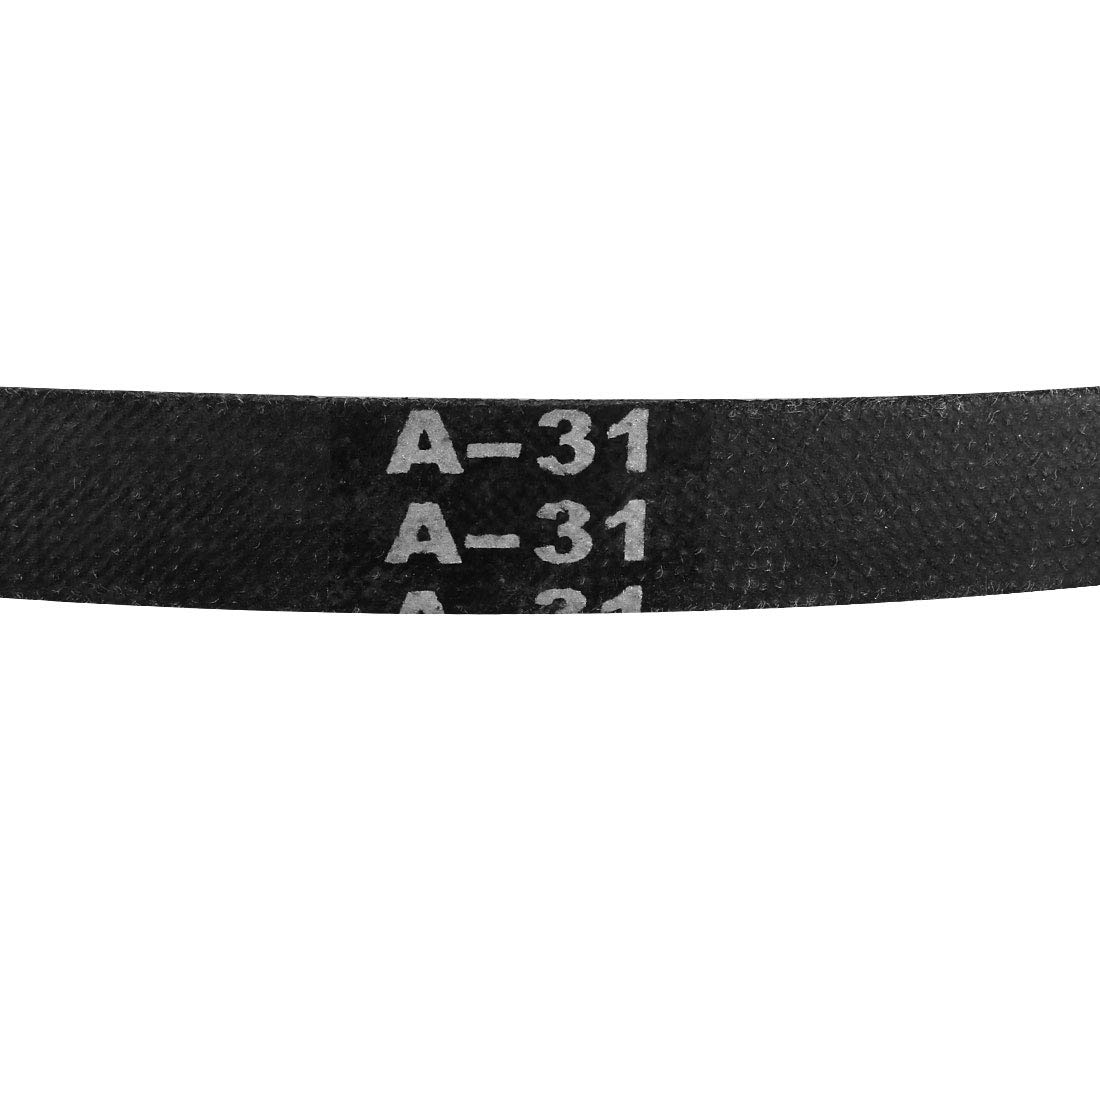 uxcell A-36 Drive V-Belt Girth 36-inch Industrial Power Rubber Transmission Belt